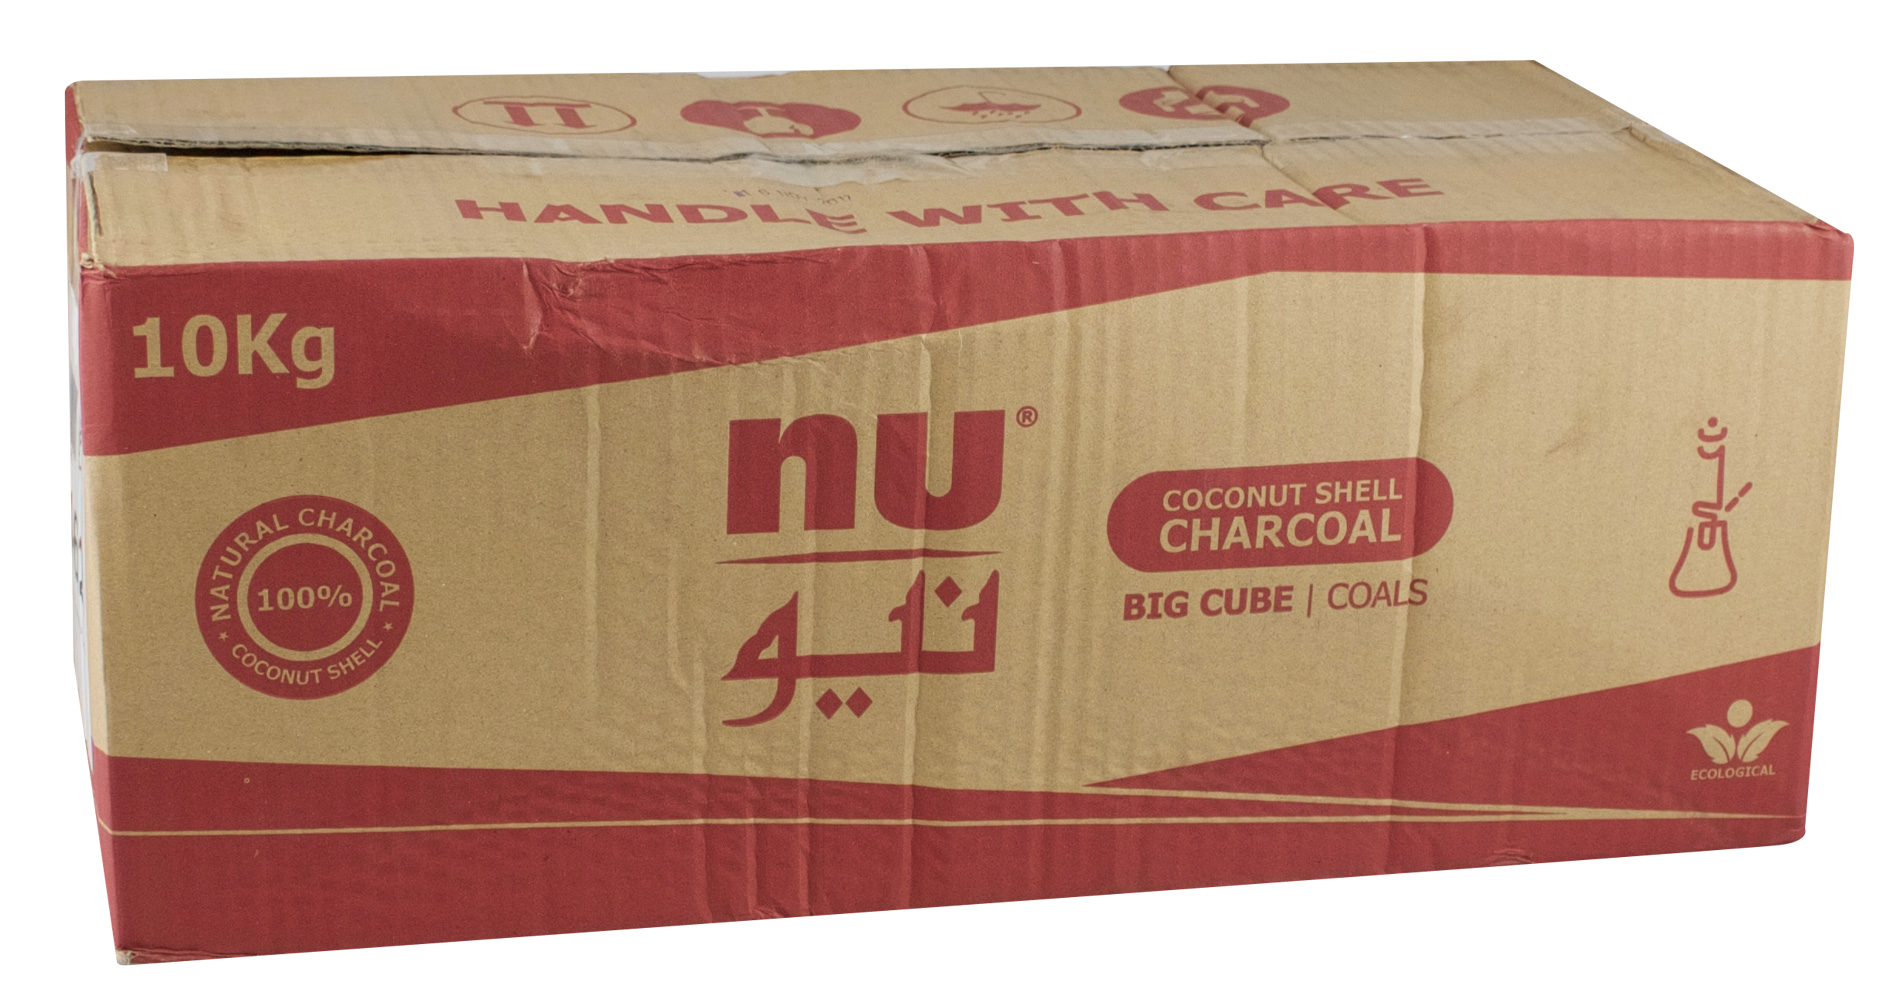 NU Big Cube Hookah Charcoal - 10kg Box - AFG Distribution